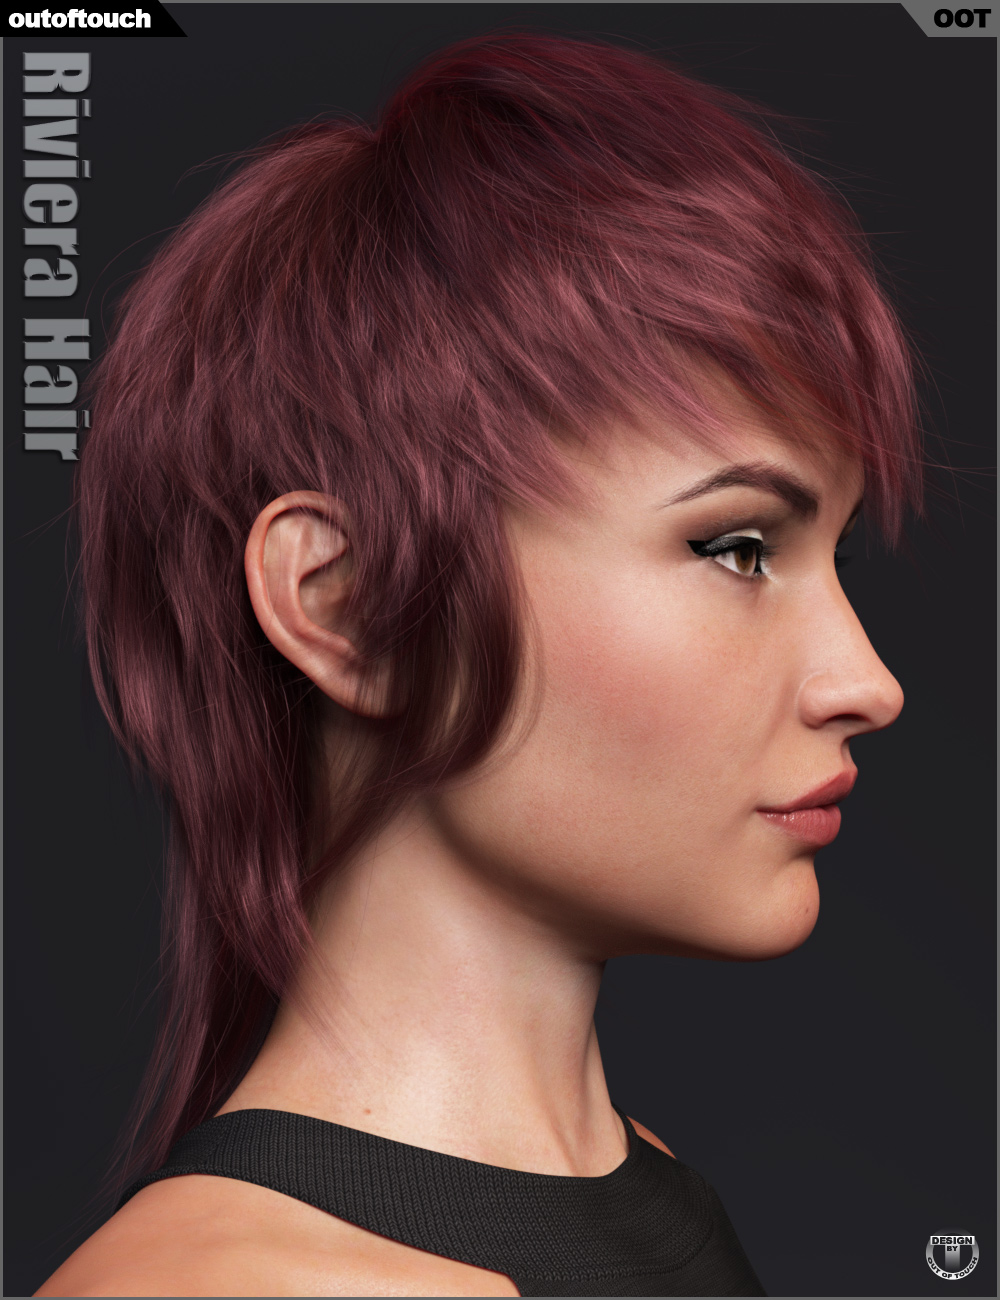 Riviera Hair for Genesis 3 and 8 by: outoftouch, 3D Models by Daz 3D